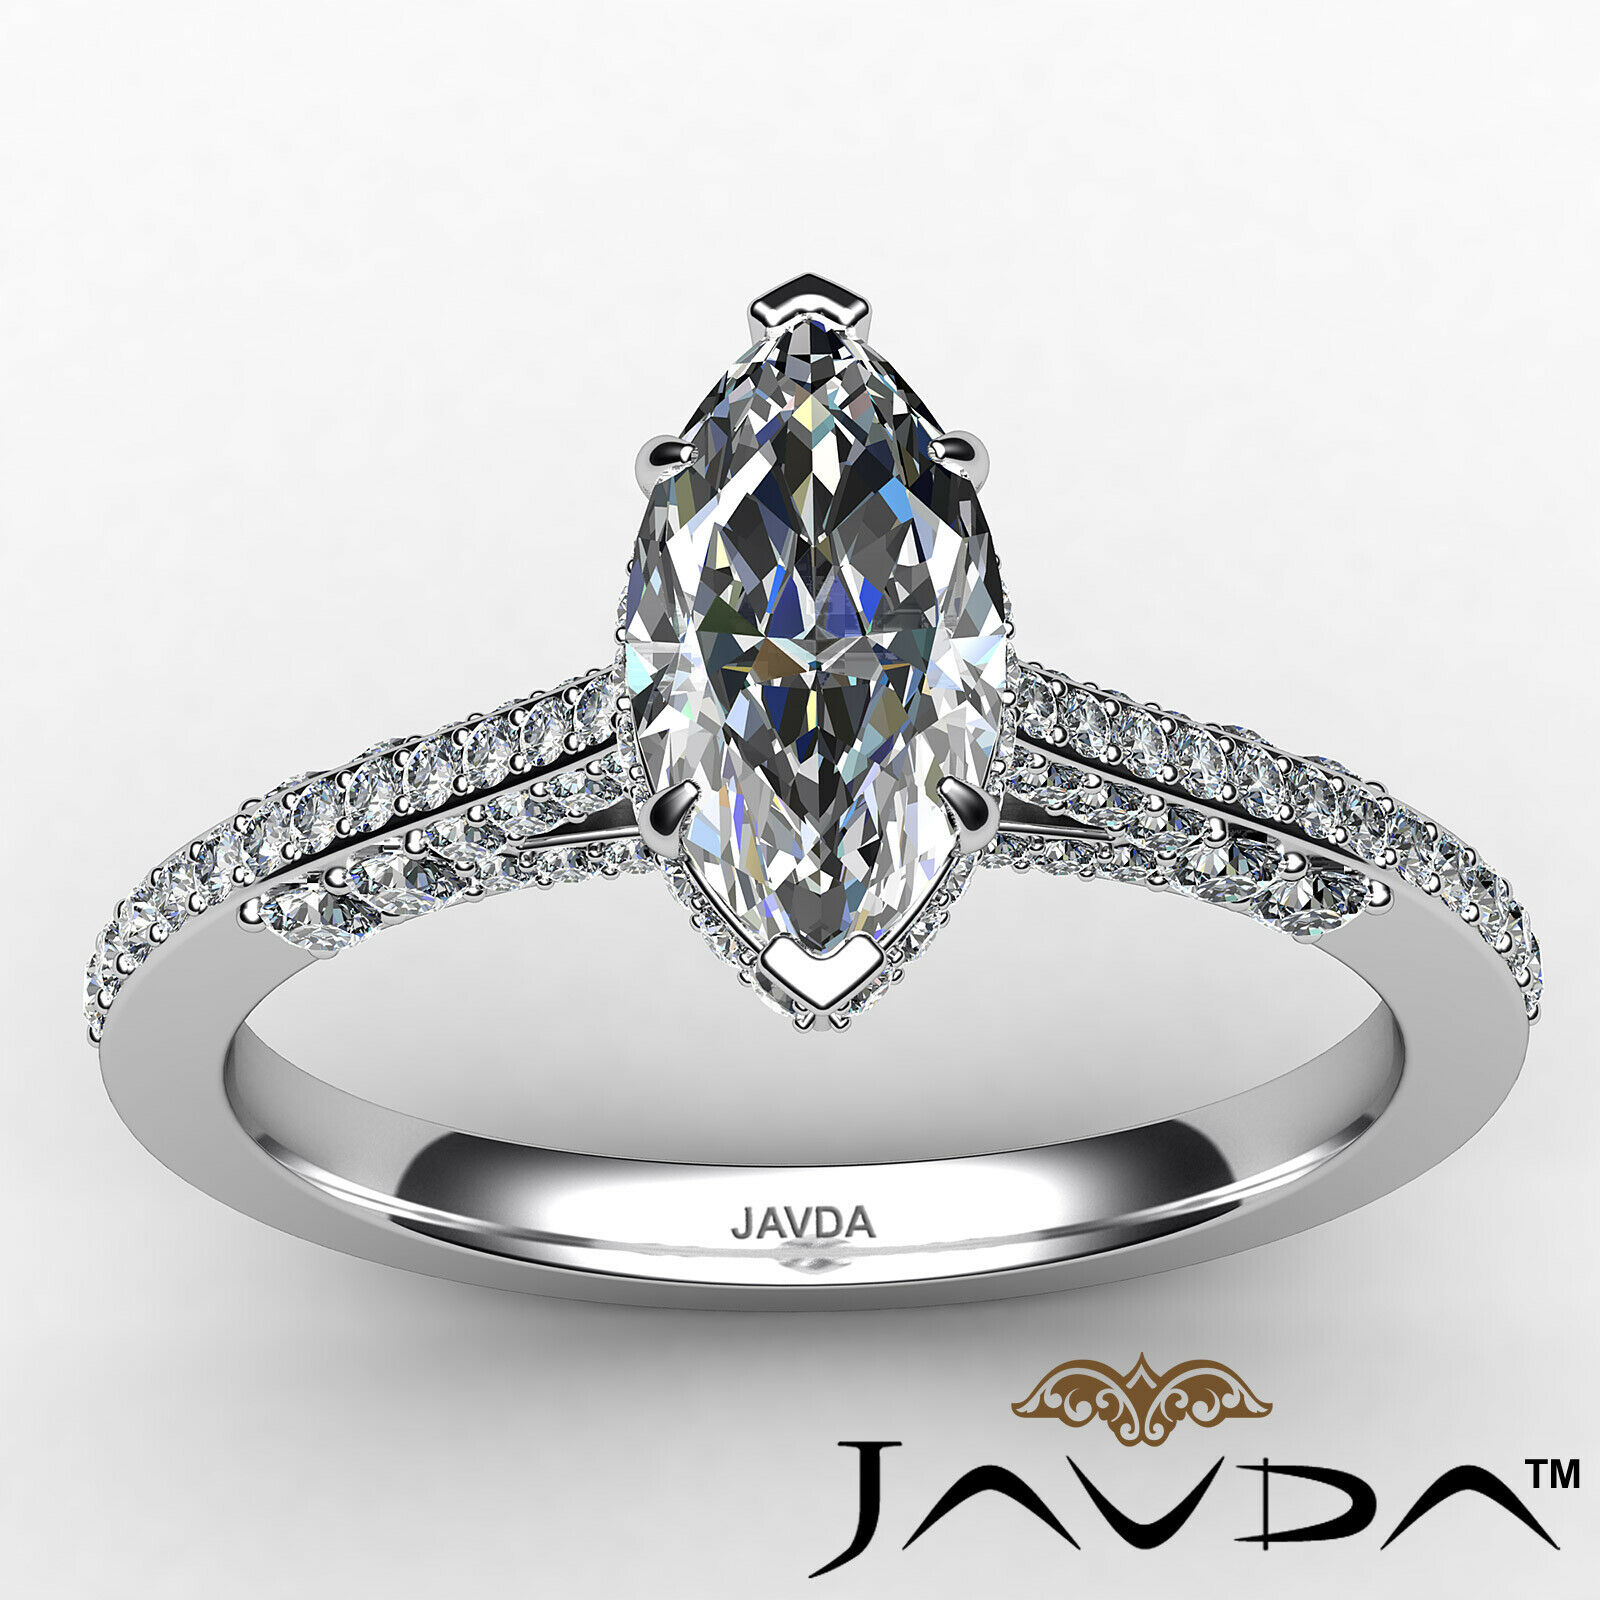 Circa Halo Marquise Diamond Engagement Ring GIA G Color & VVS2 clarity 1.1 ctw 9